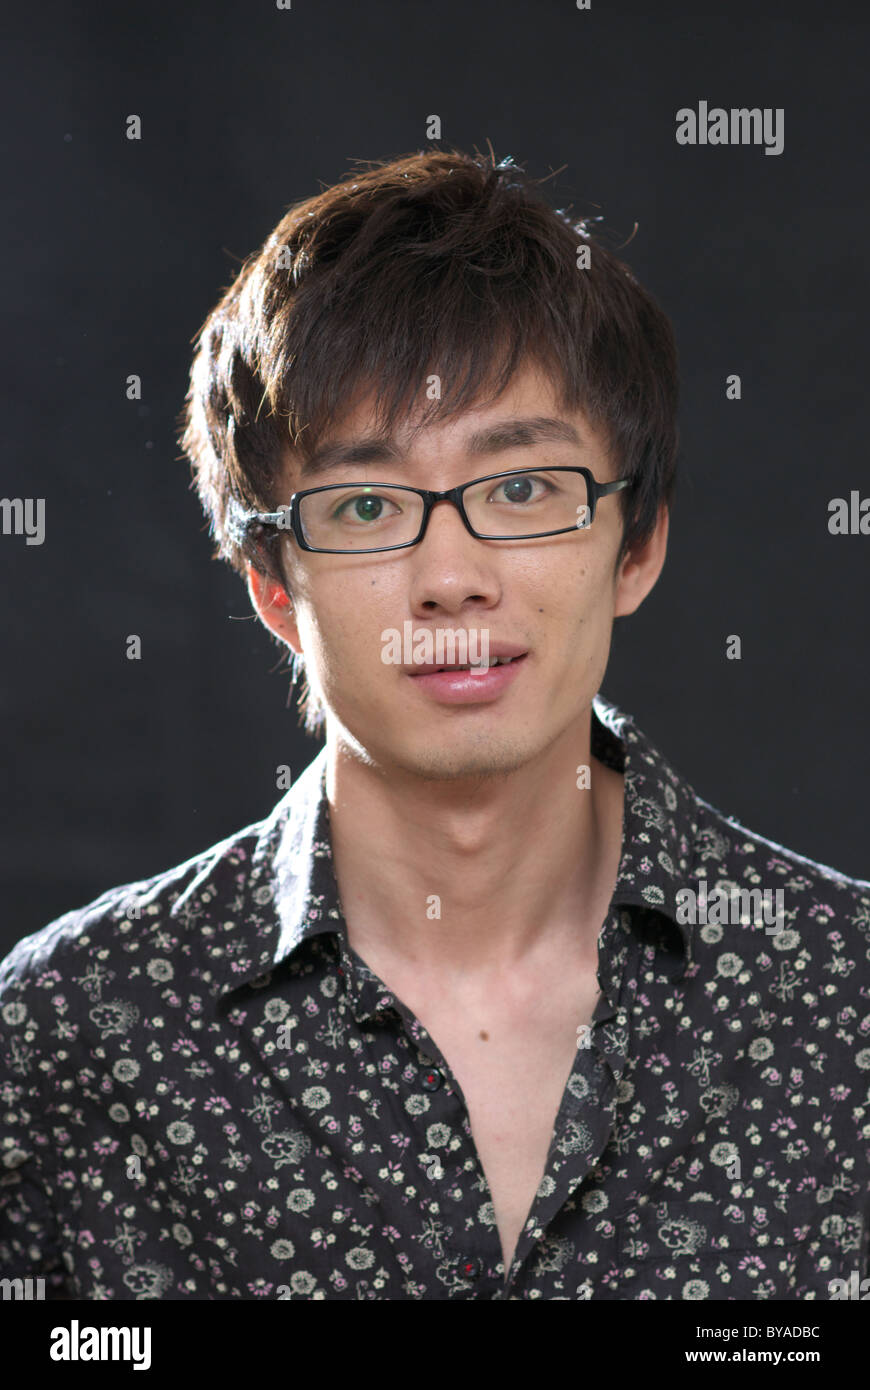 Asian young man portrait Photo Stock